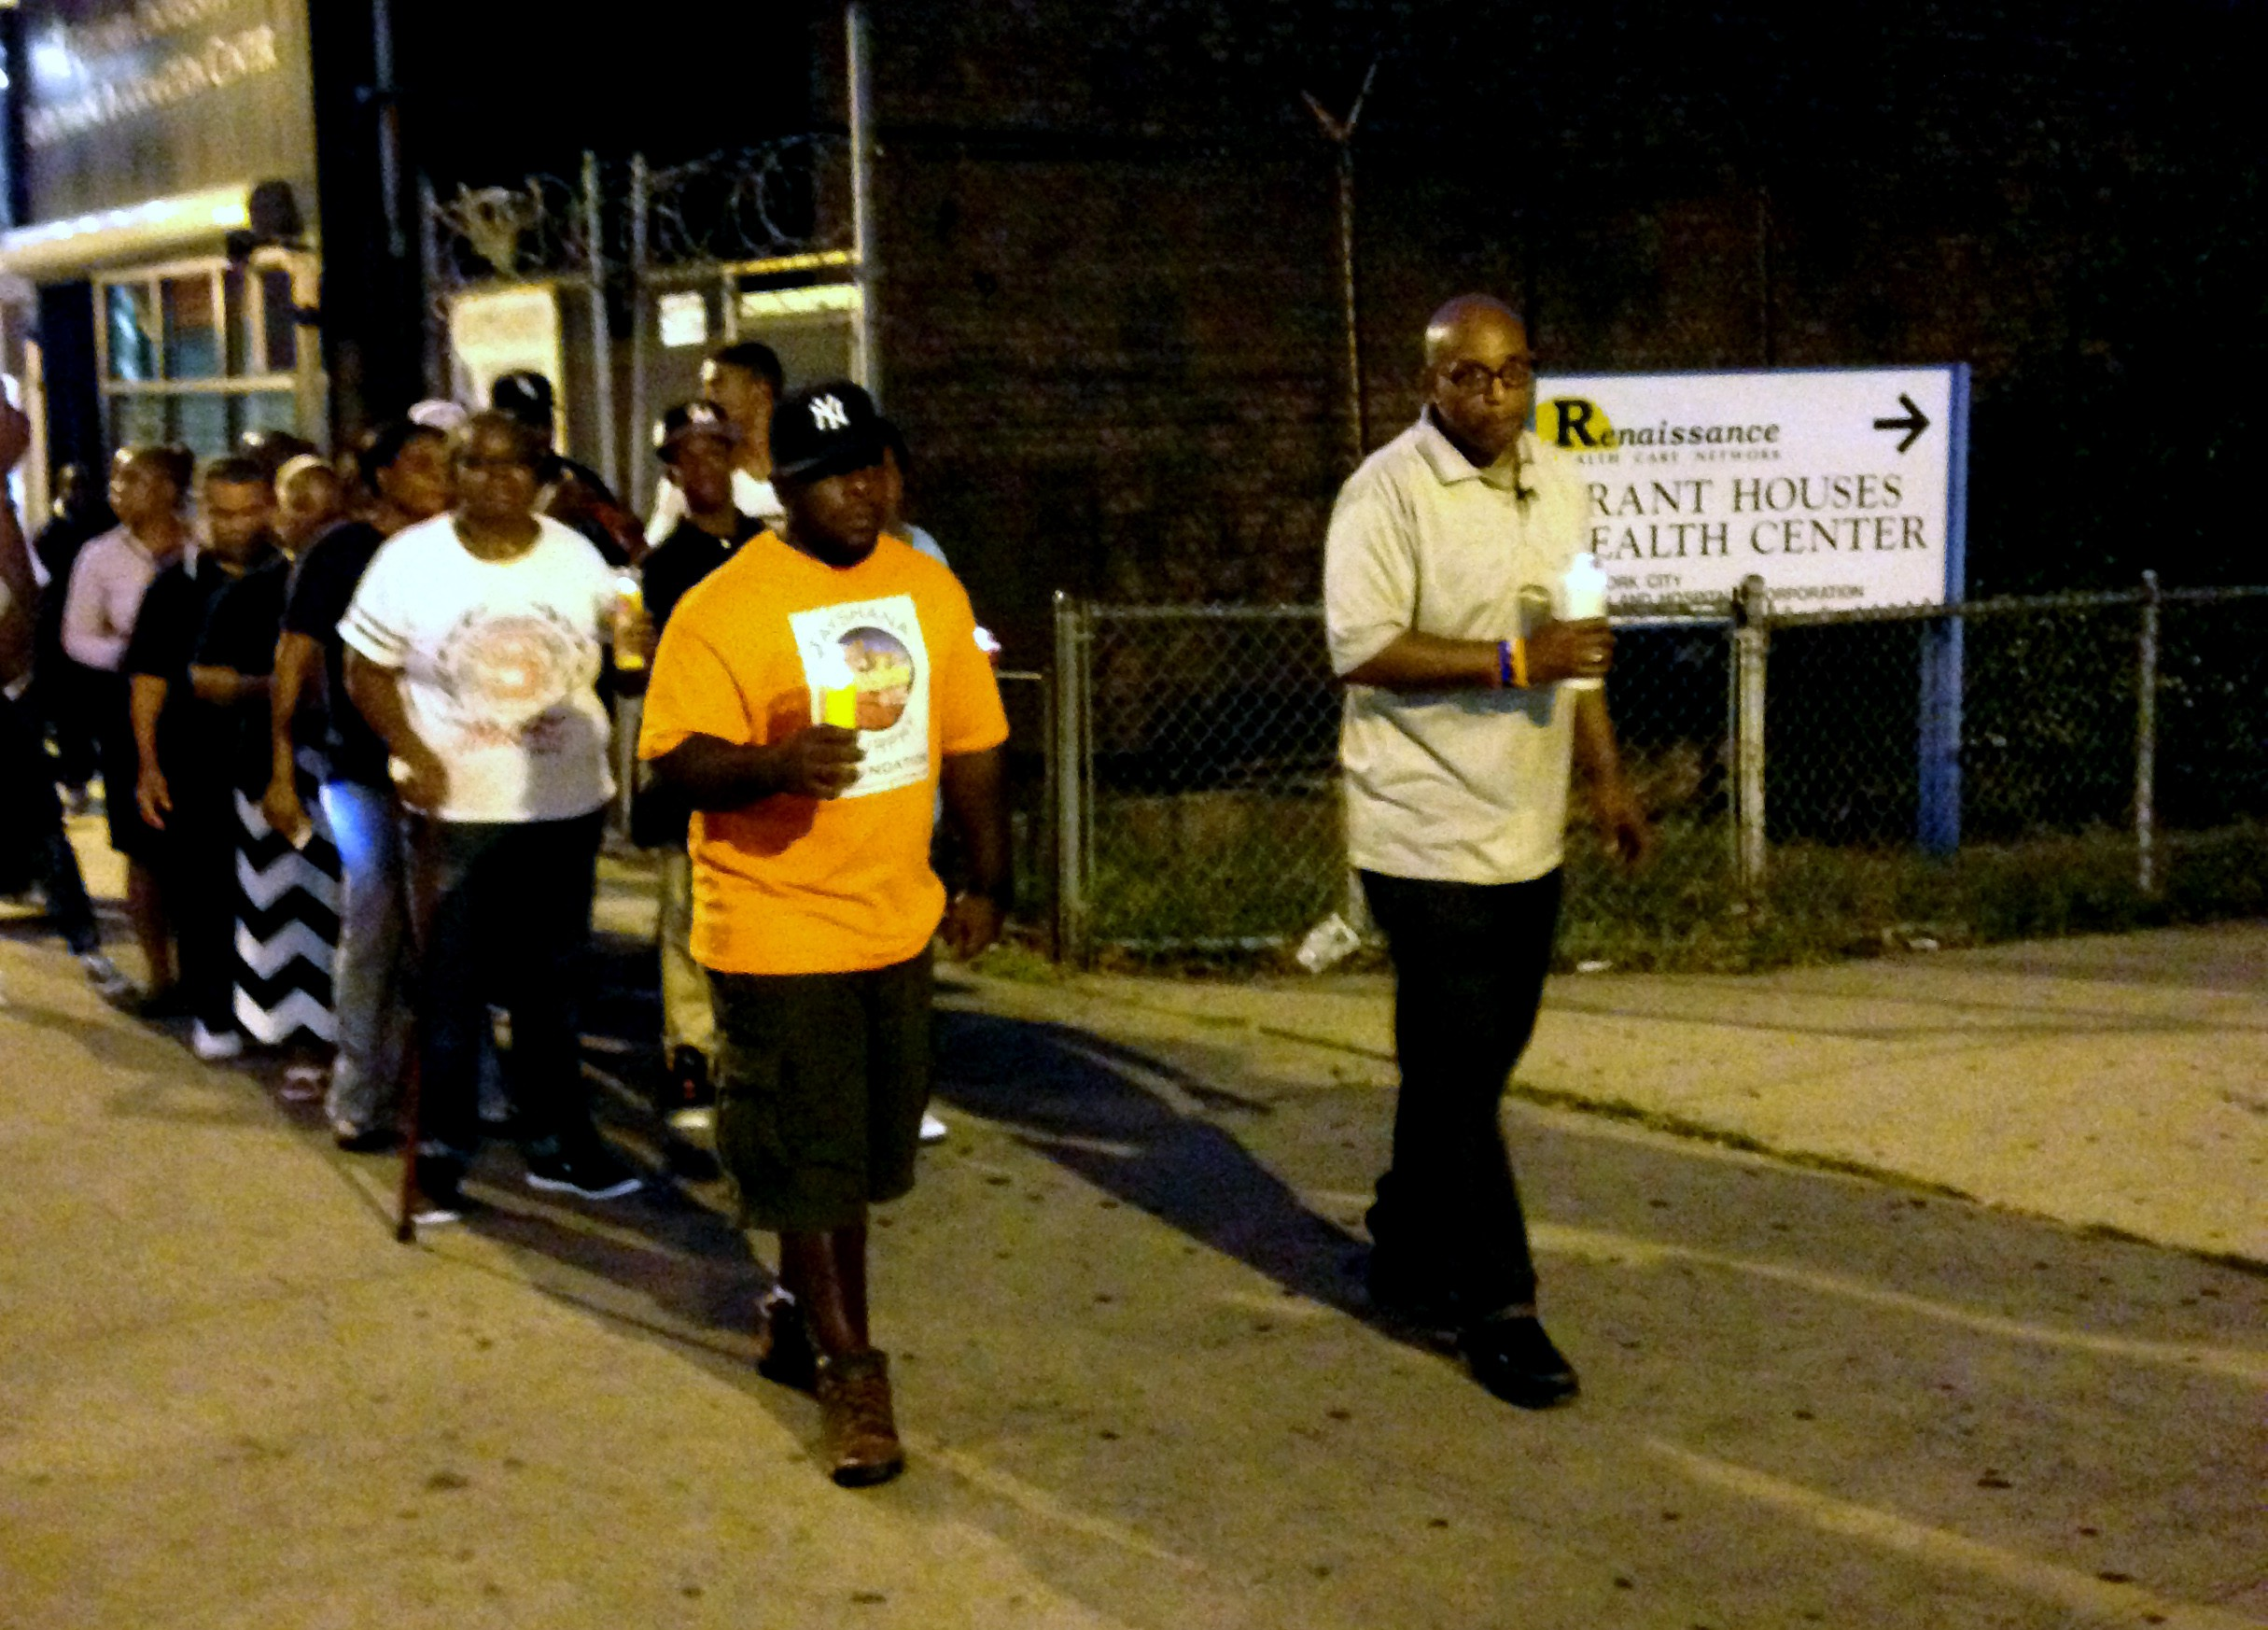 Taylonn Murphy leads a candlelight vigil in West Harlem to commemorate his daughter, Tayshana Murphy, and bring together the community.